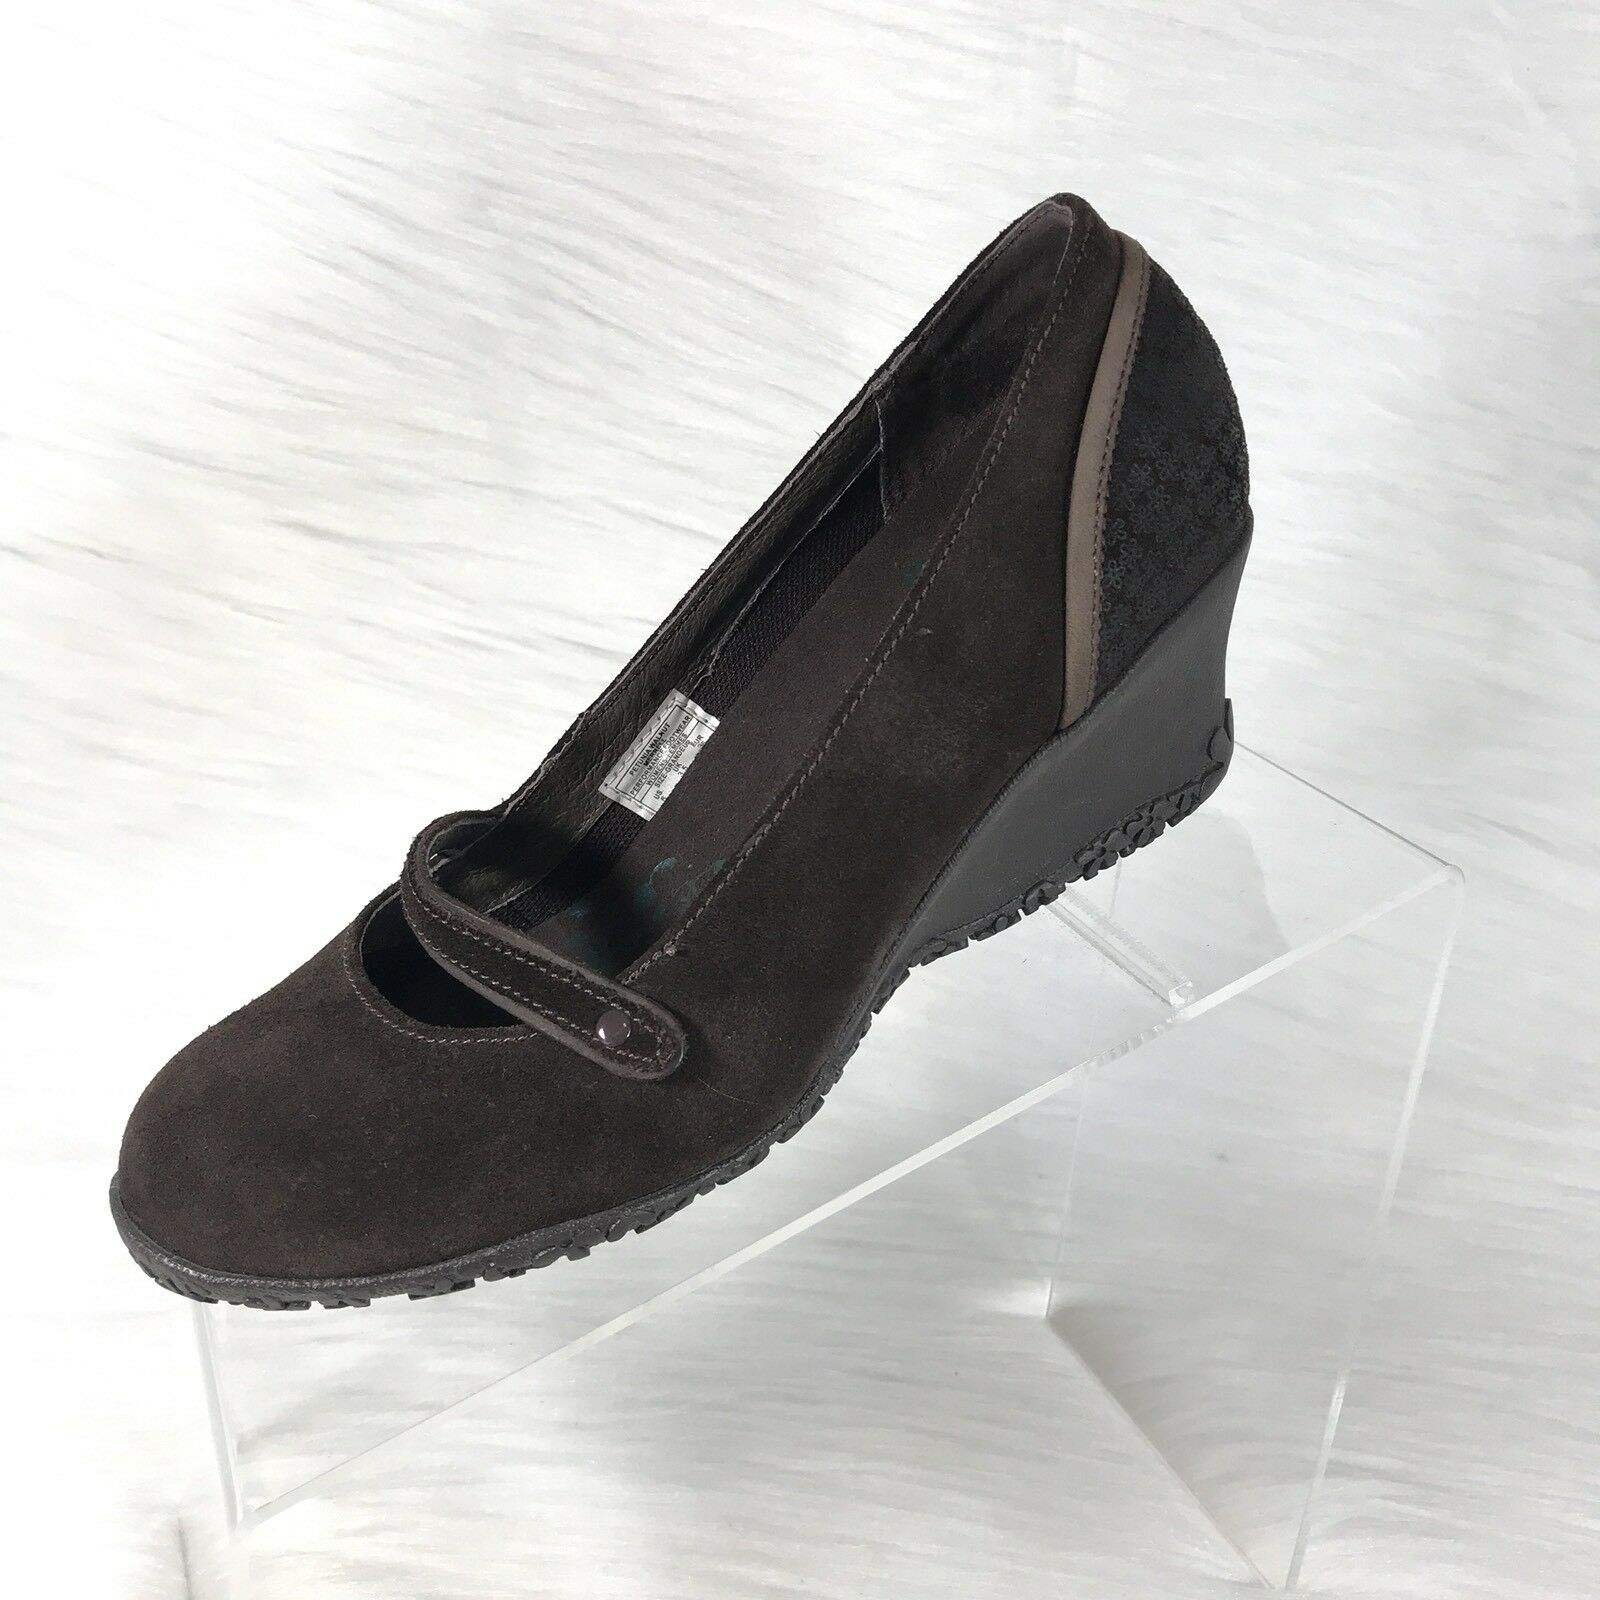 Merrell Petunia Womens Mary Jane shoes  Wedges Brown Suede Size 6